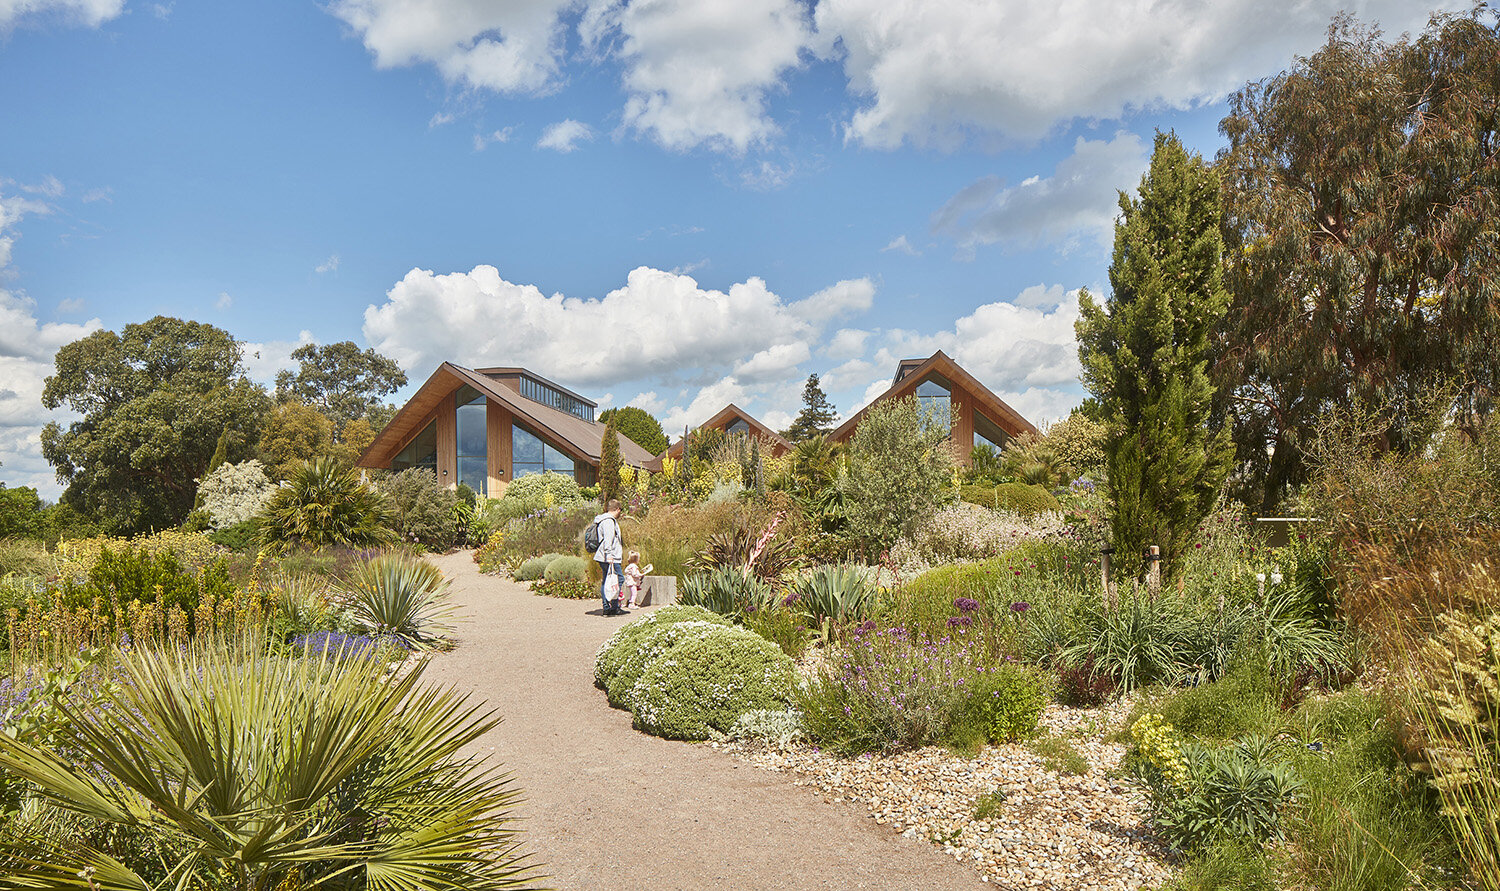 The Clore Education Centre for the Royal Horticultural Society